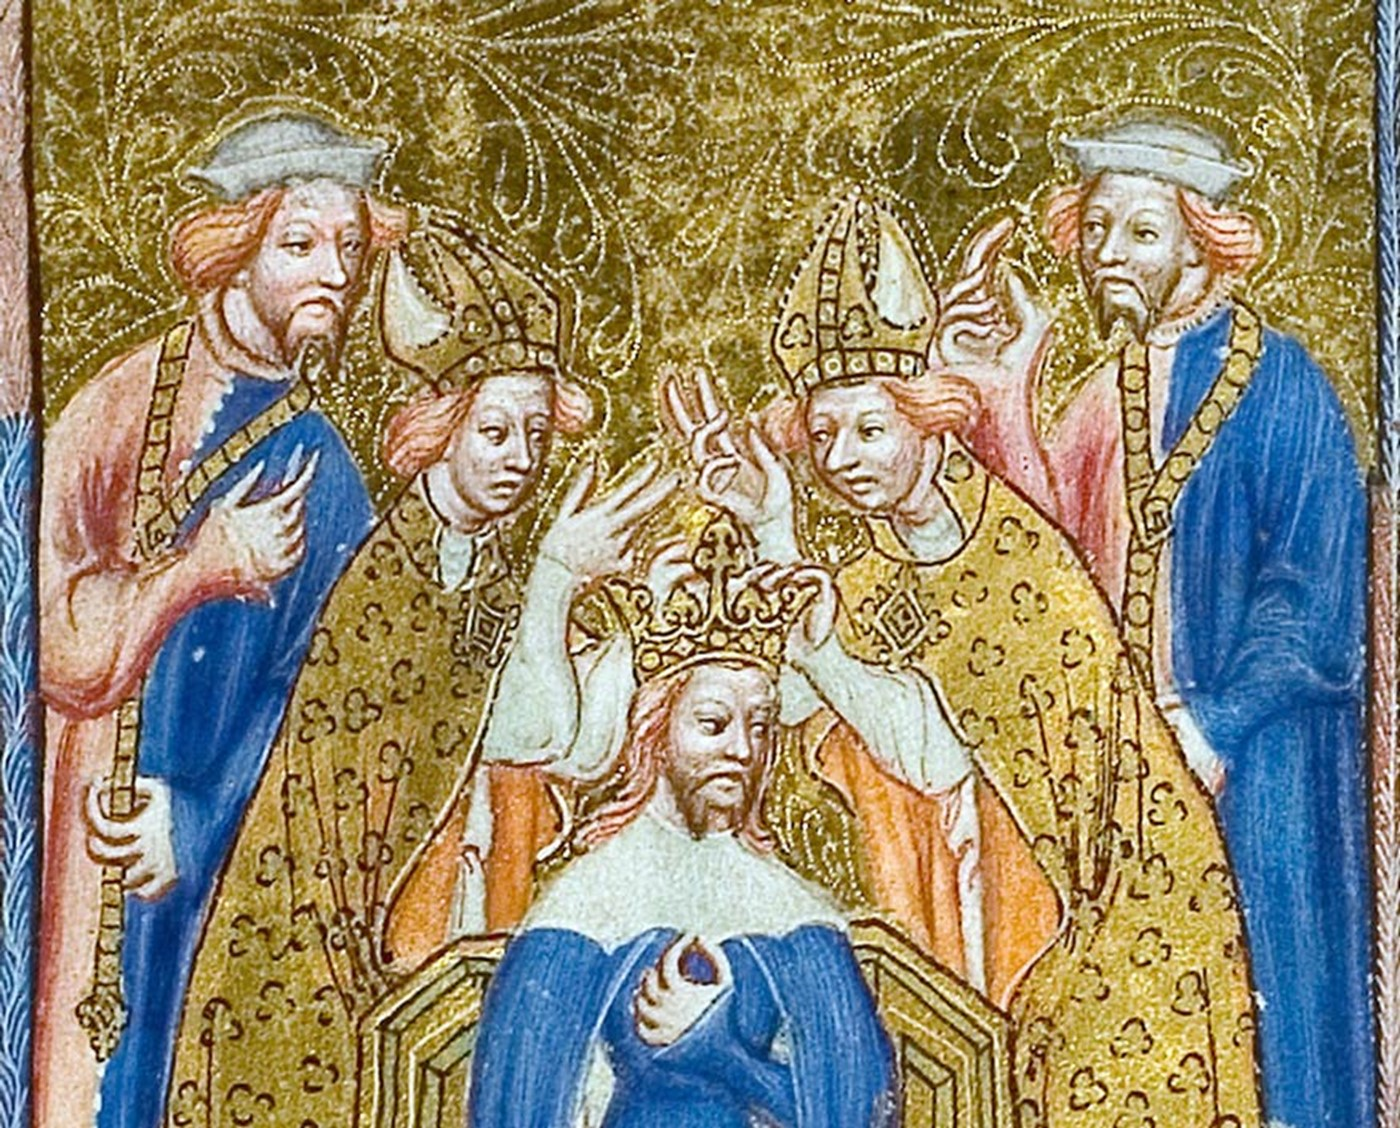 liber-regalis-king-being-crowned.jpg